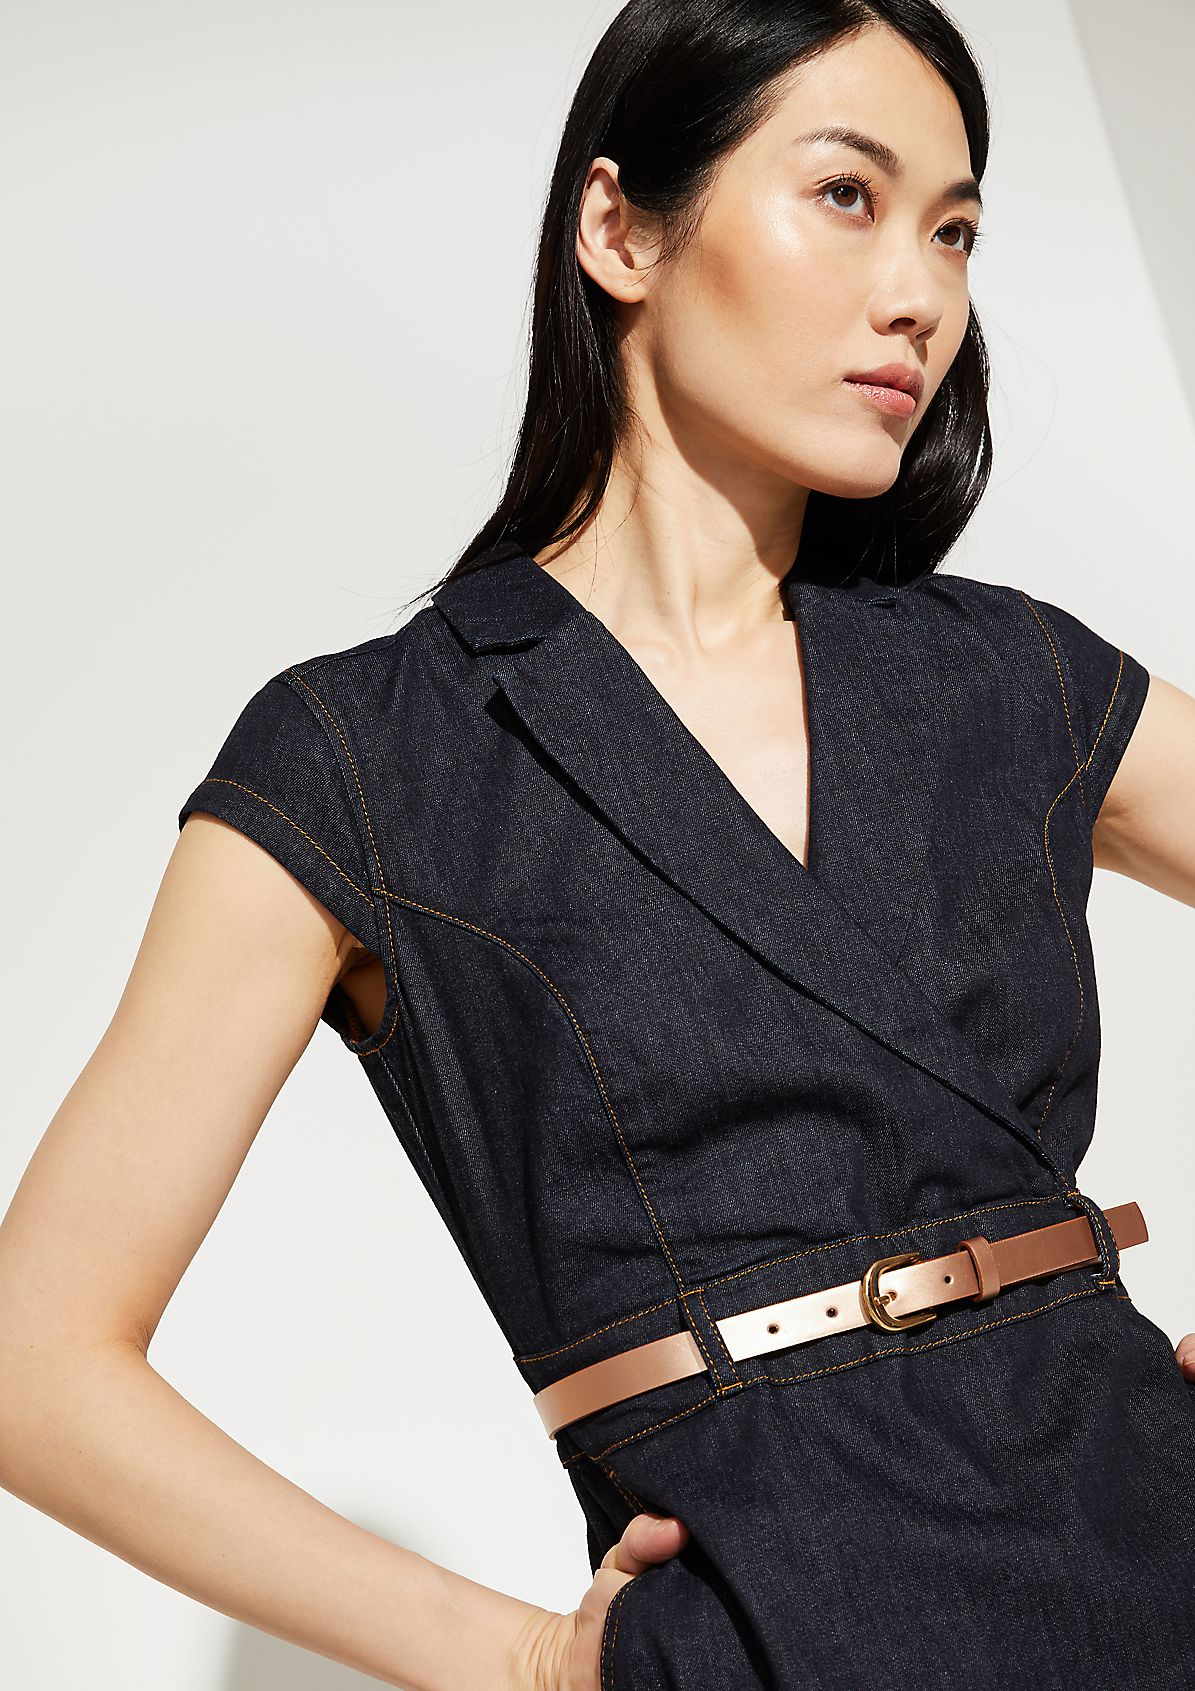 Denim dress with a metallic belt from comma